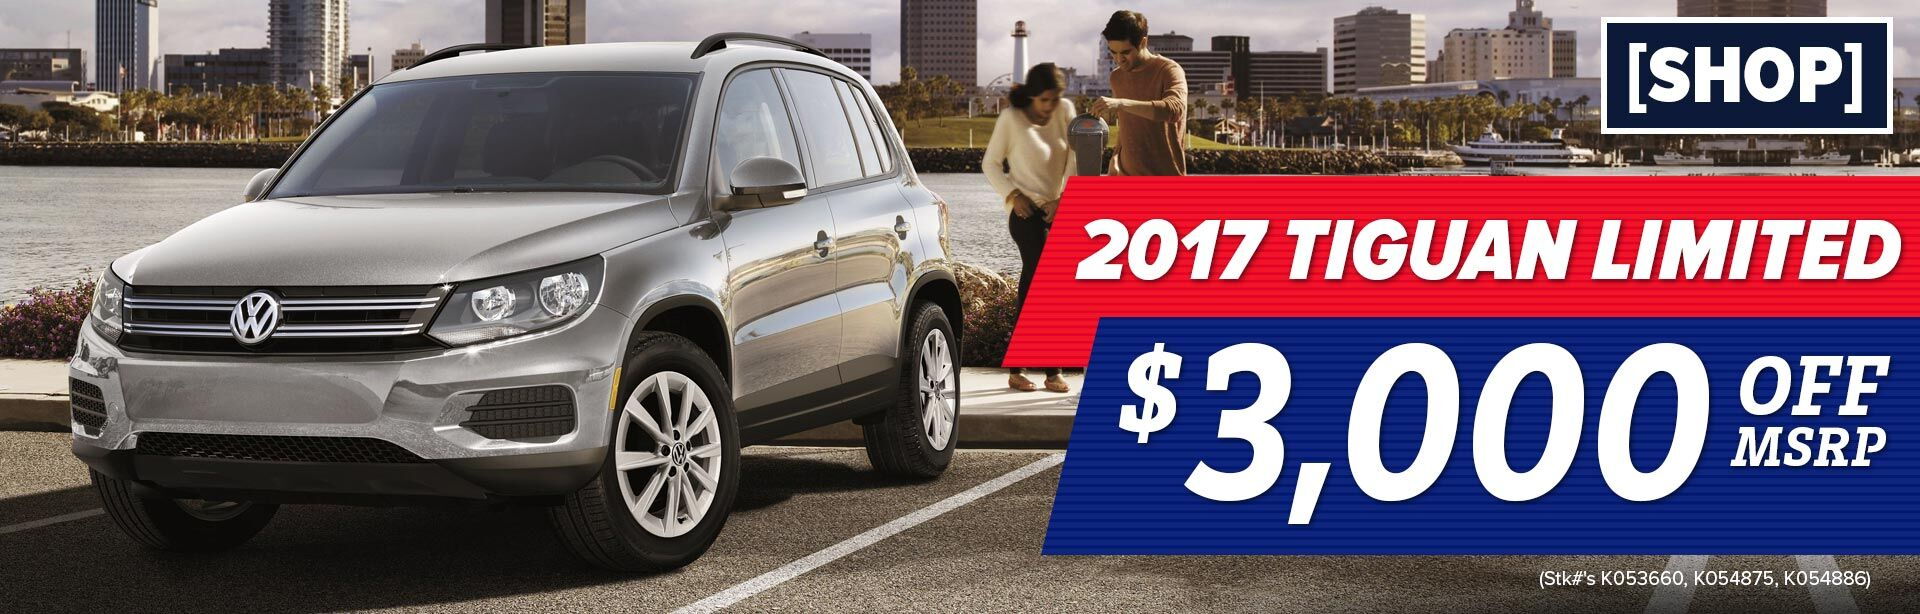 Mission 2017 Tiguan Limited